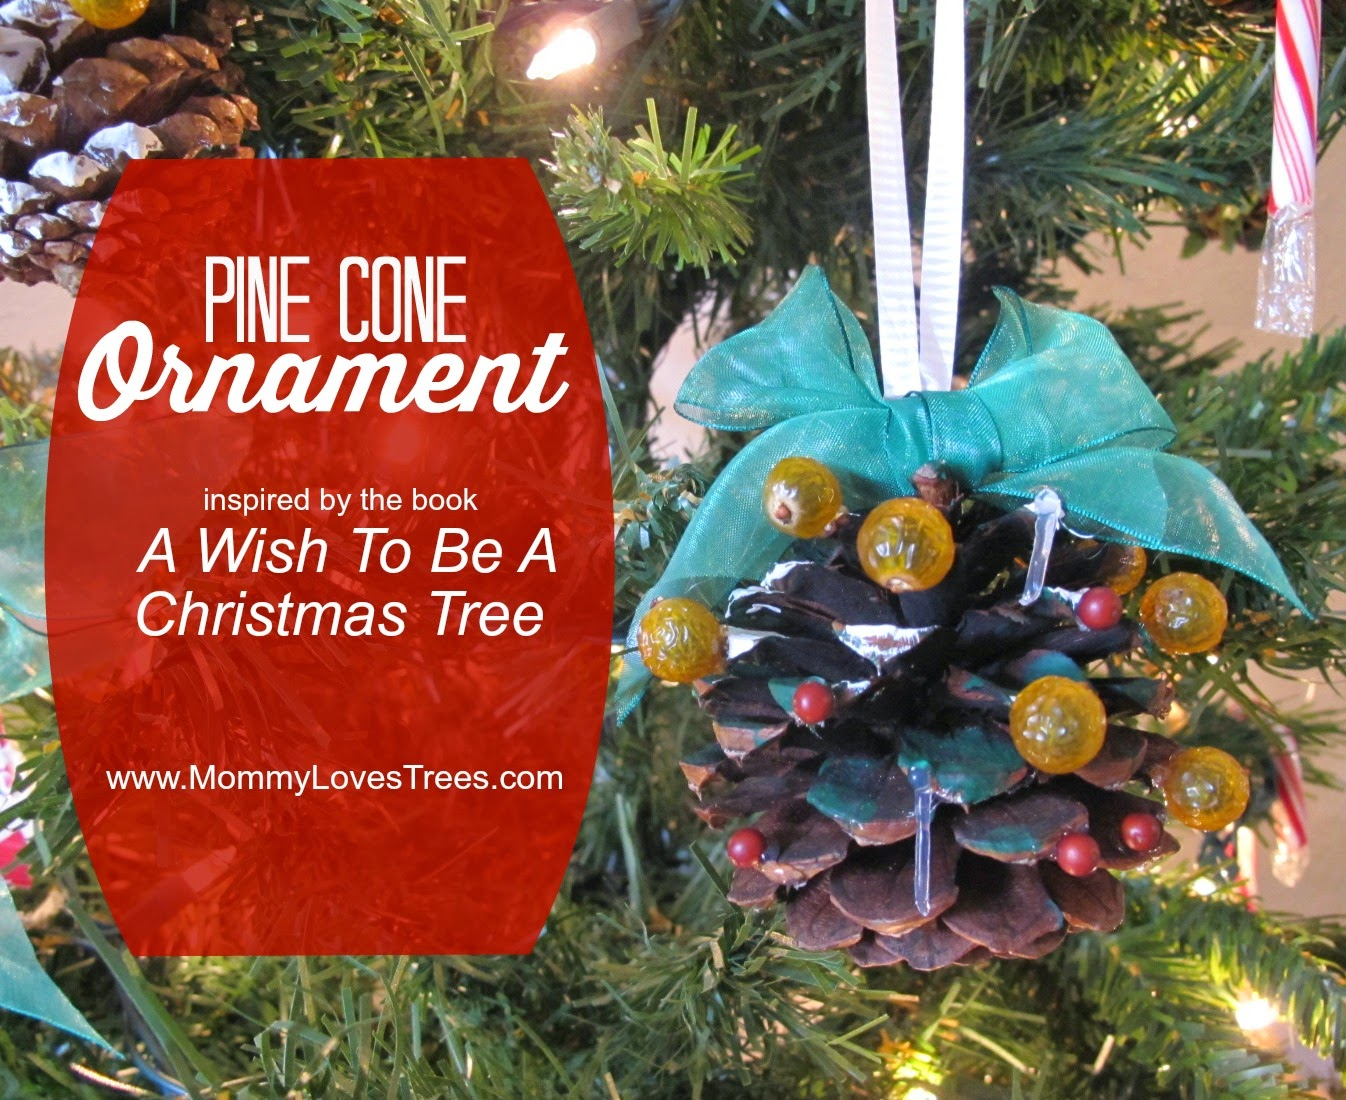 Nature Walk: Pine Cone Ornament